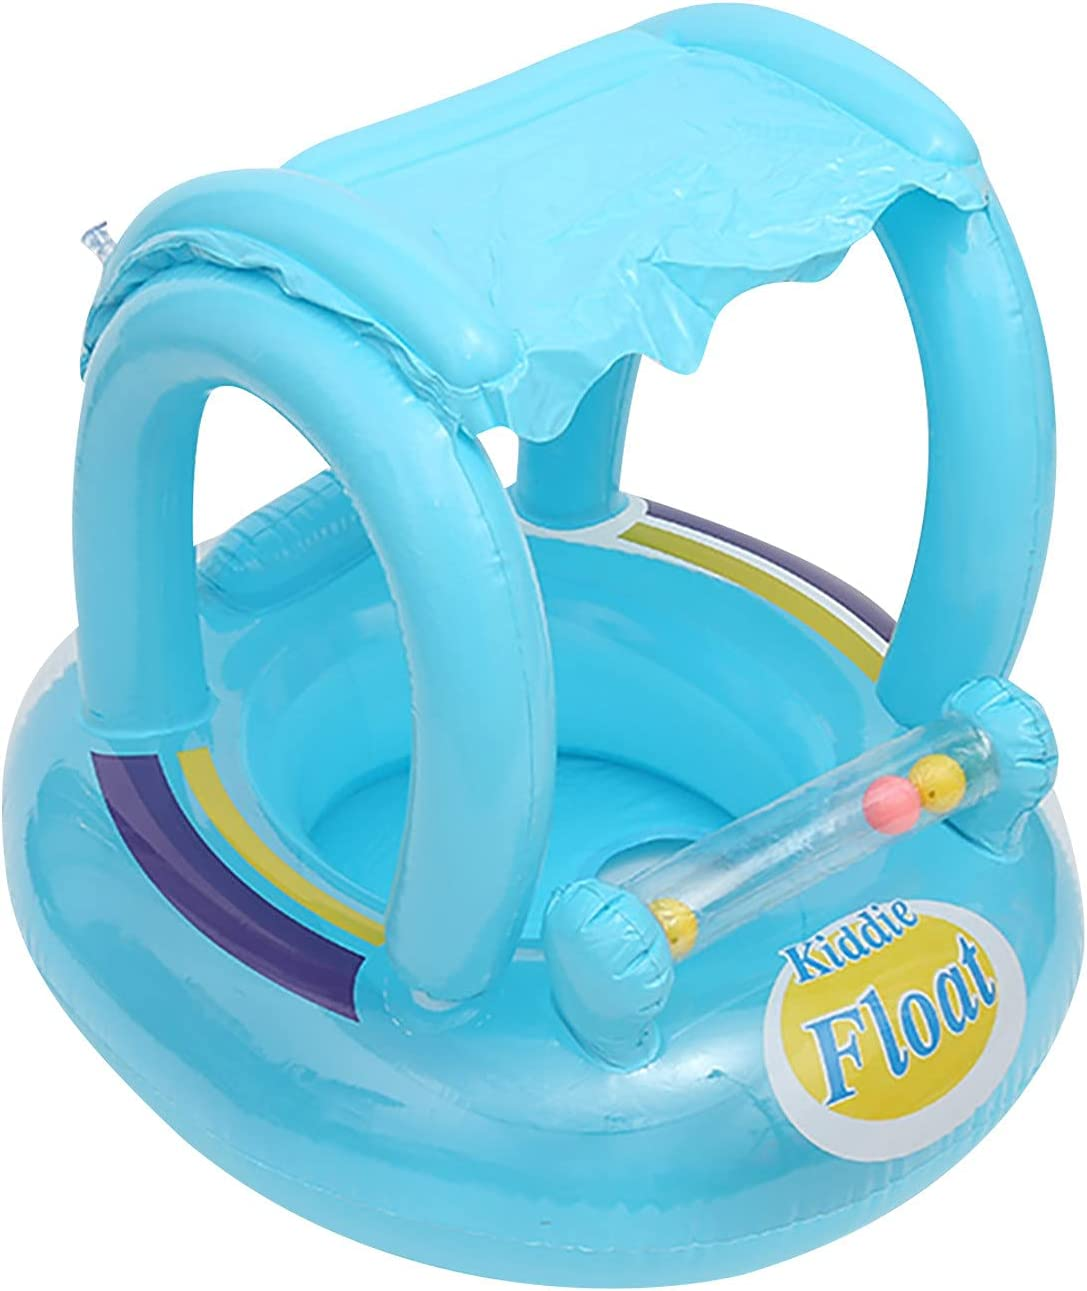 21 in x 18in Kiddie Float for 1-2 Minneapolis Ranking TOP14 Mall Po Ages Inflatable Years Baby